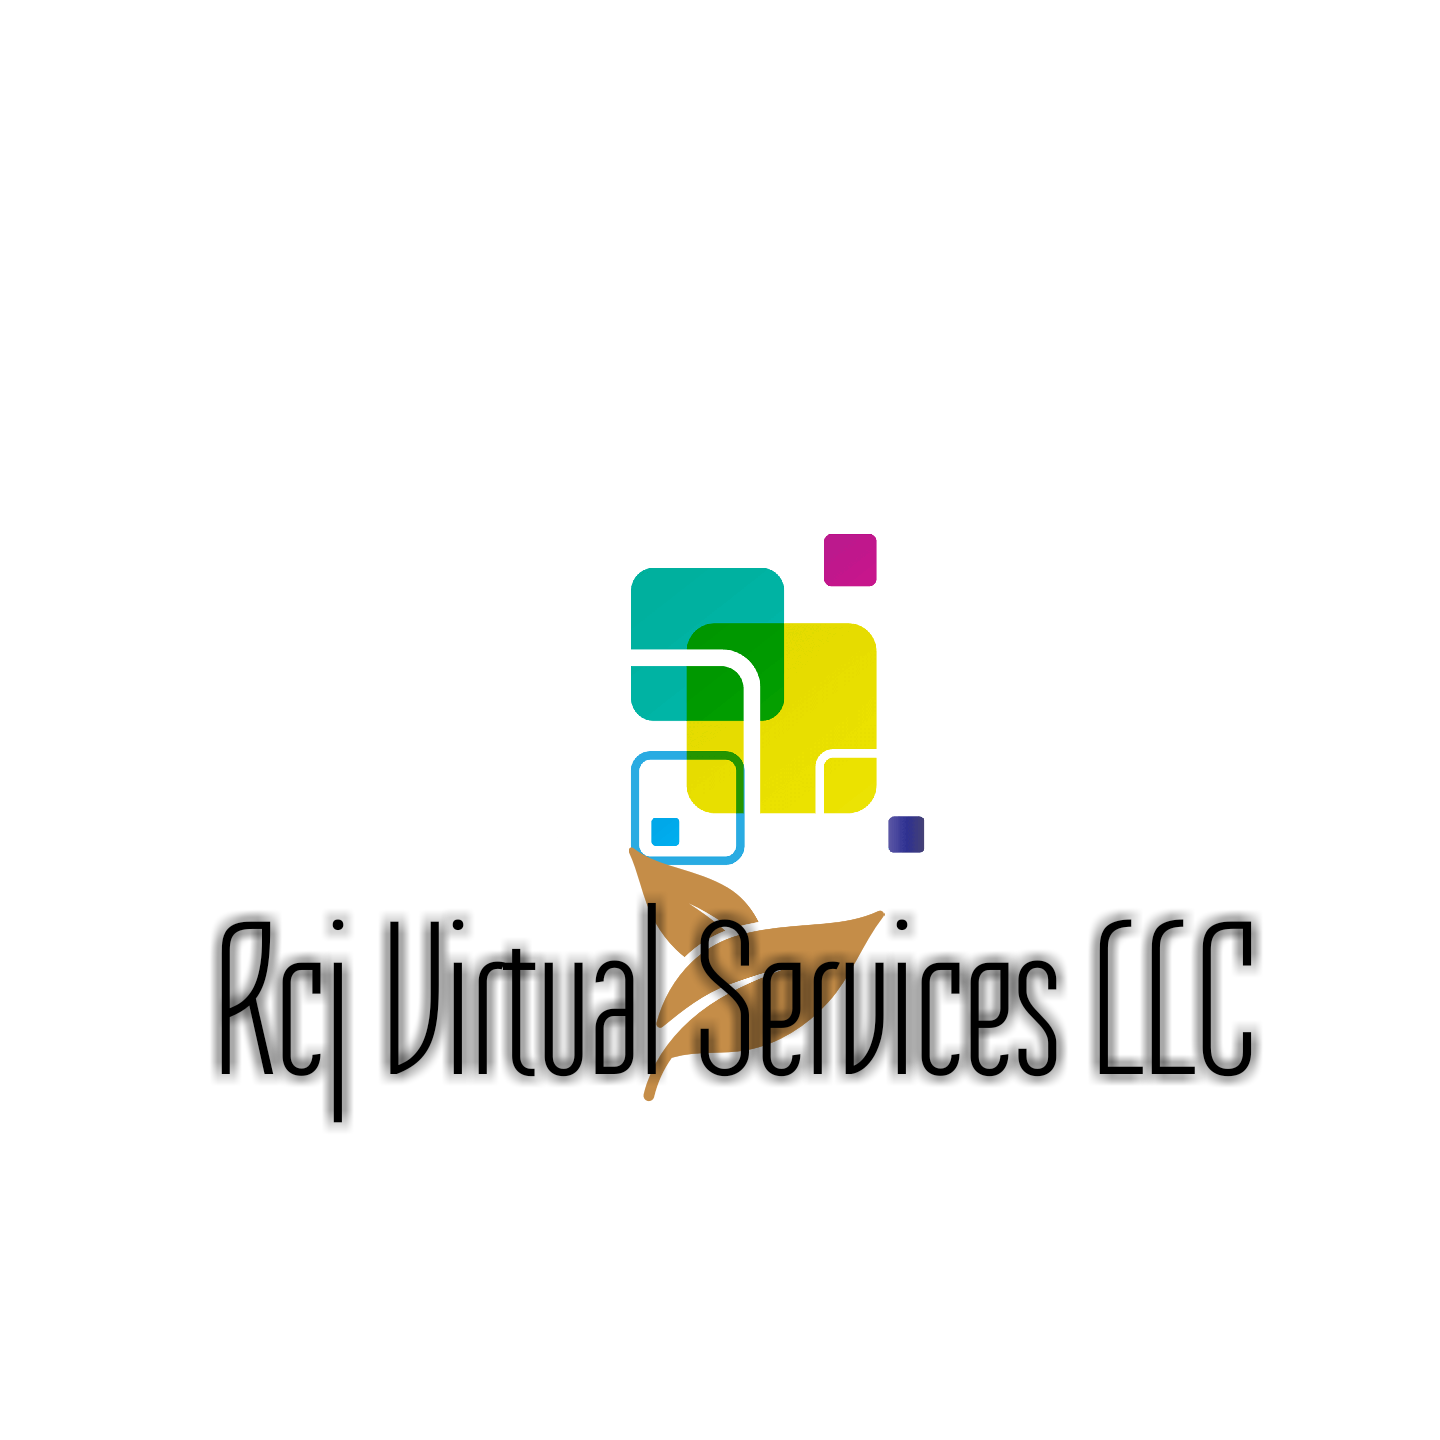 Rcj Virtual Services LLC image